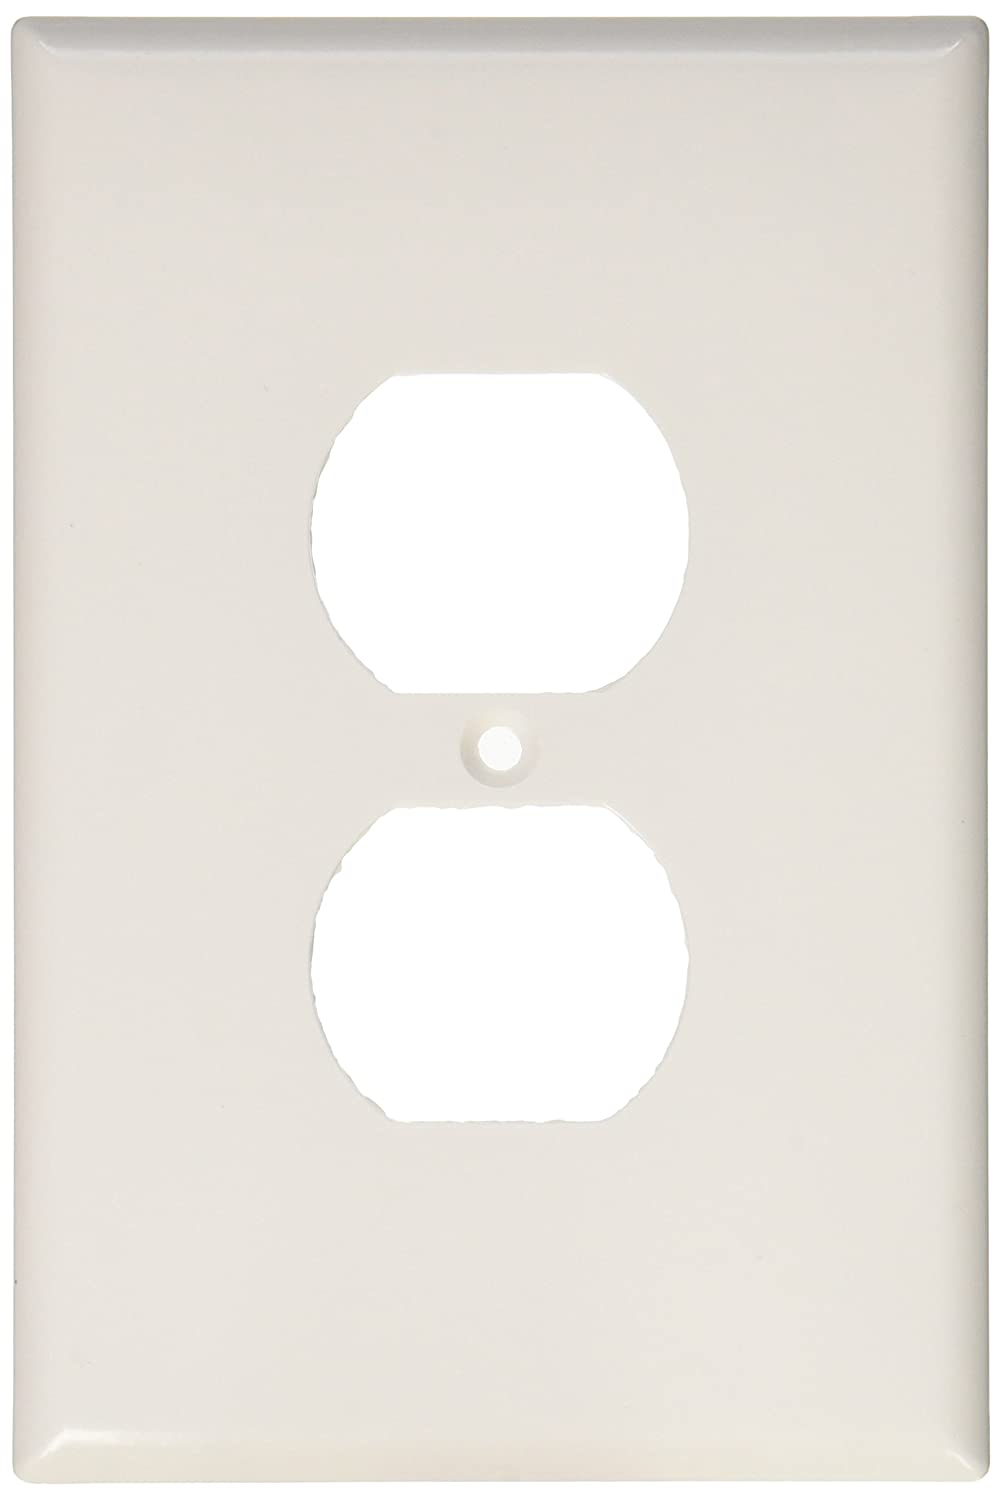 EATON Wiring 2142W-SP-L Thermoset 1-Gang Oversize Duplex Receptacle Wallplate, White 2142W-BOX